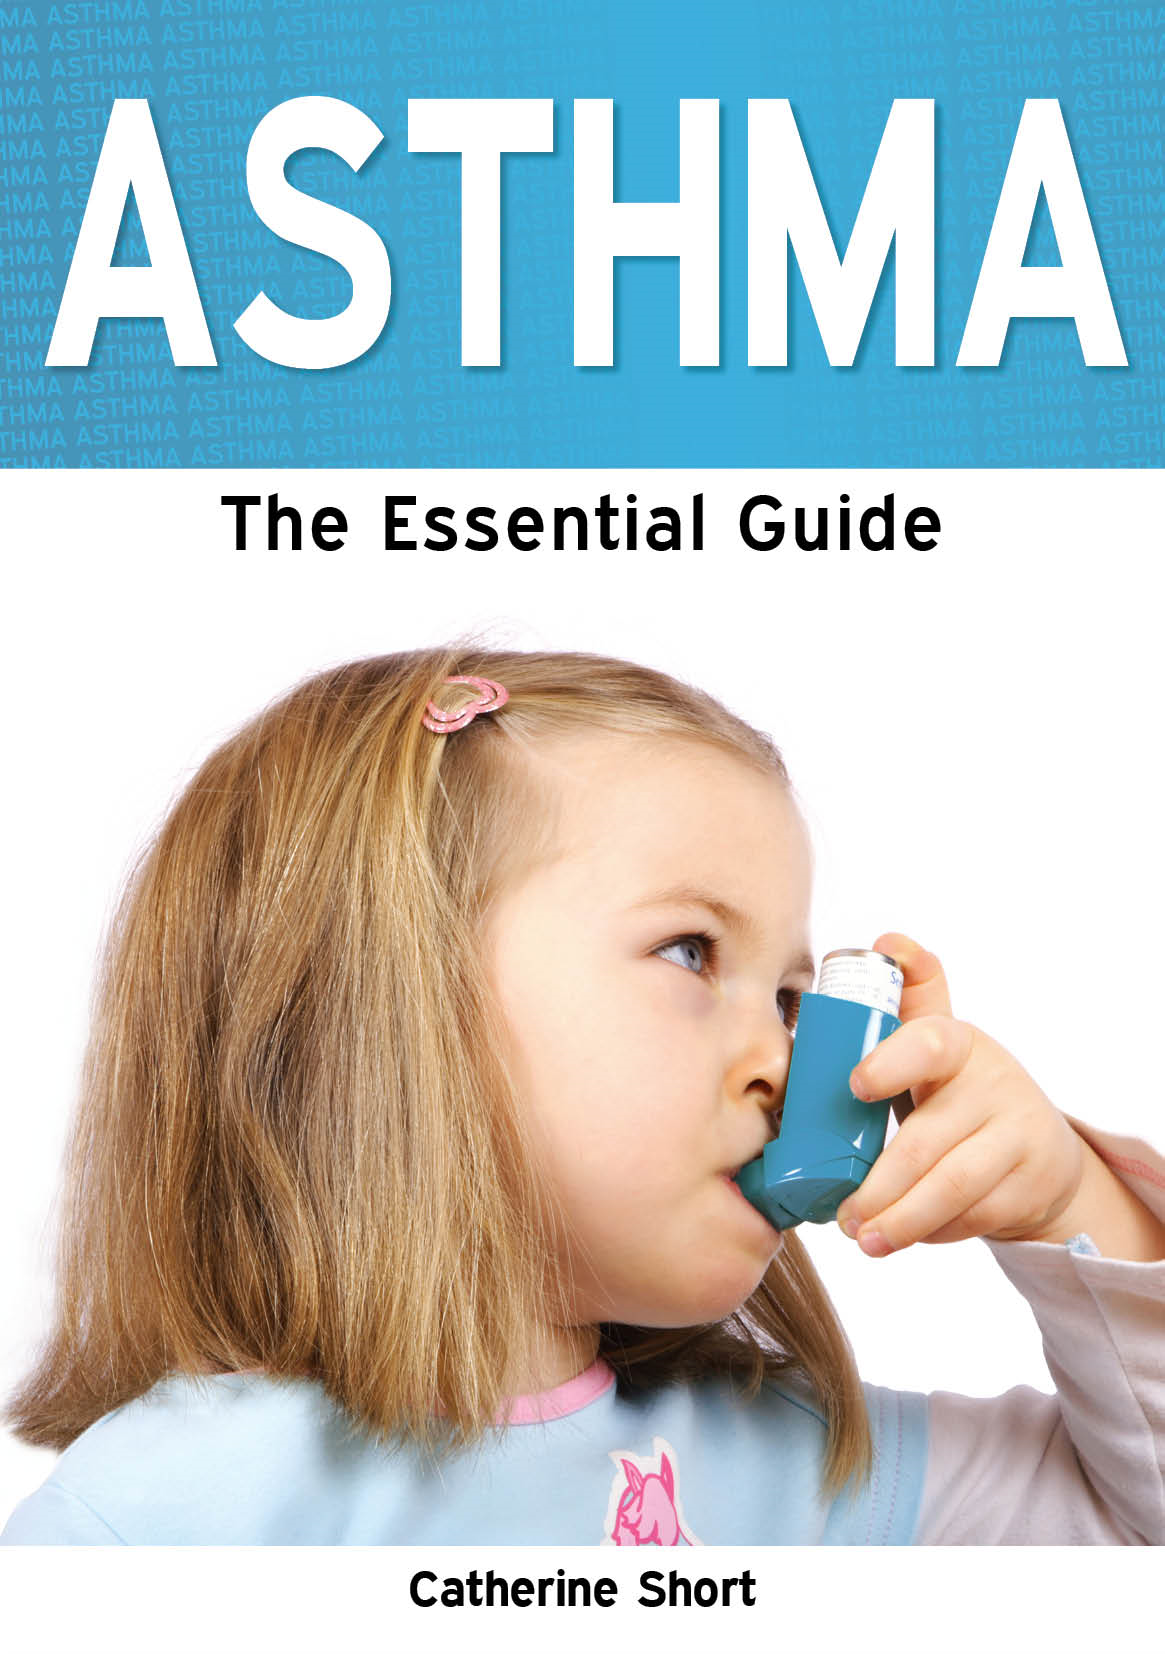 Asthma: The Essential Guide